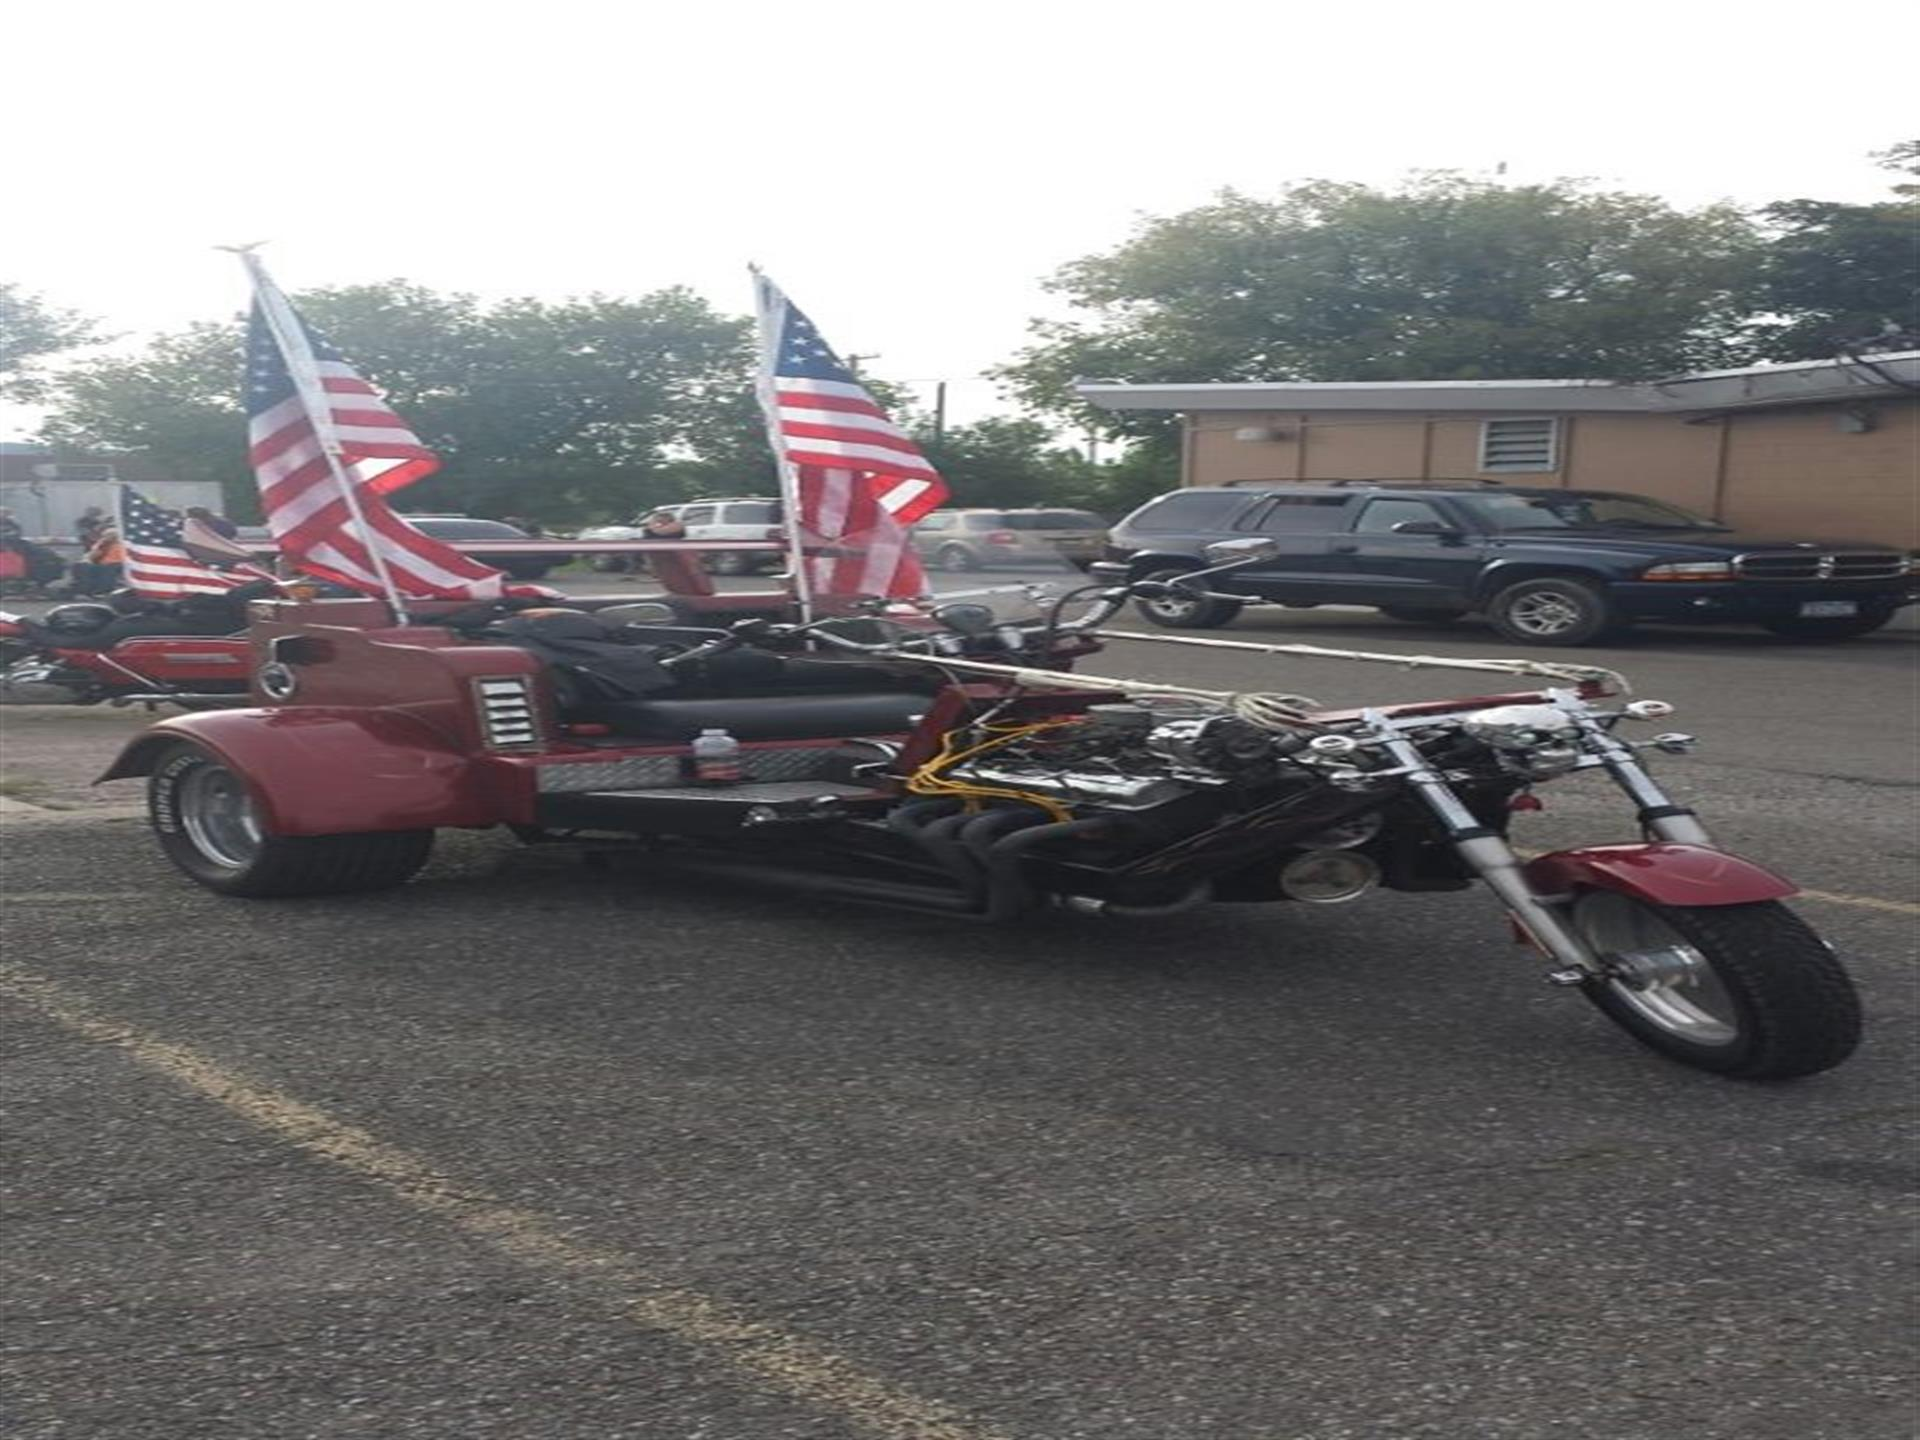 Long motorcycle with American flags